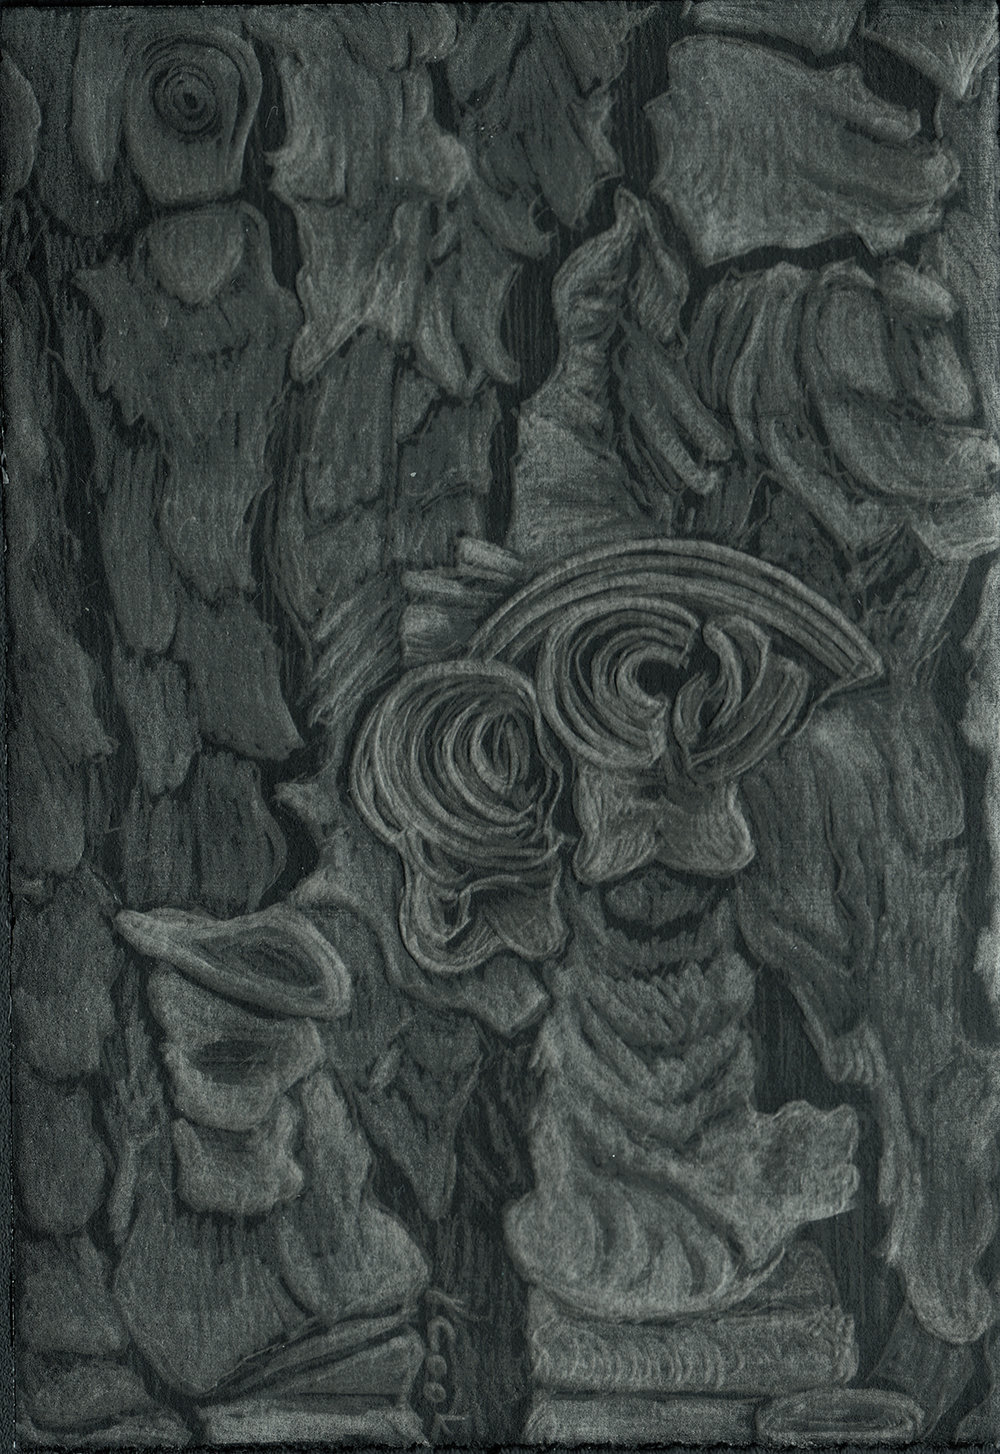 Apoyos IV - Pine tree bark - silverpoint. Jeannine Cook artist